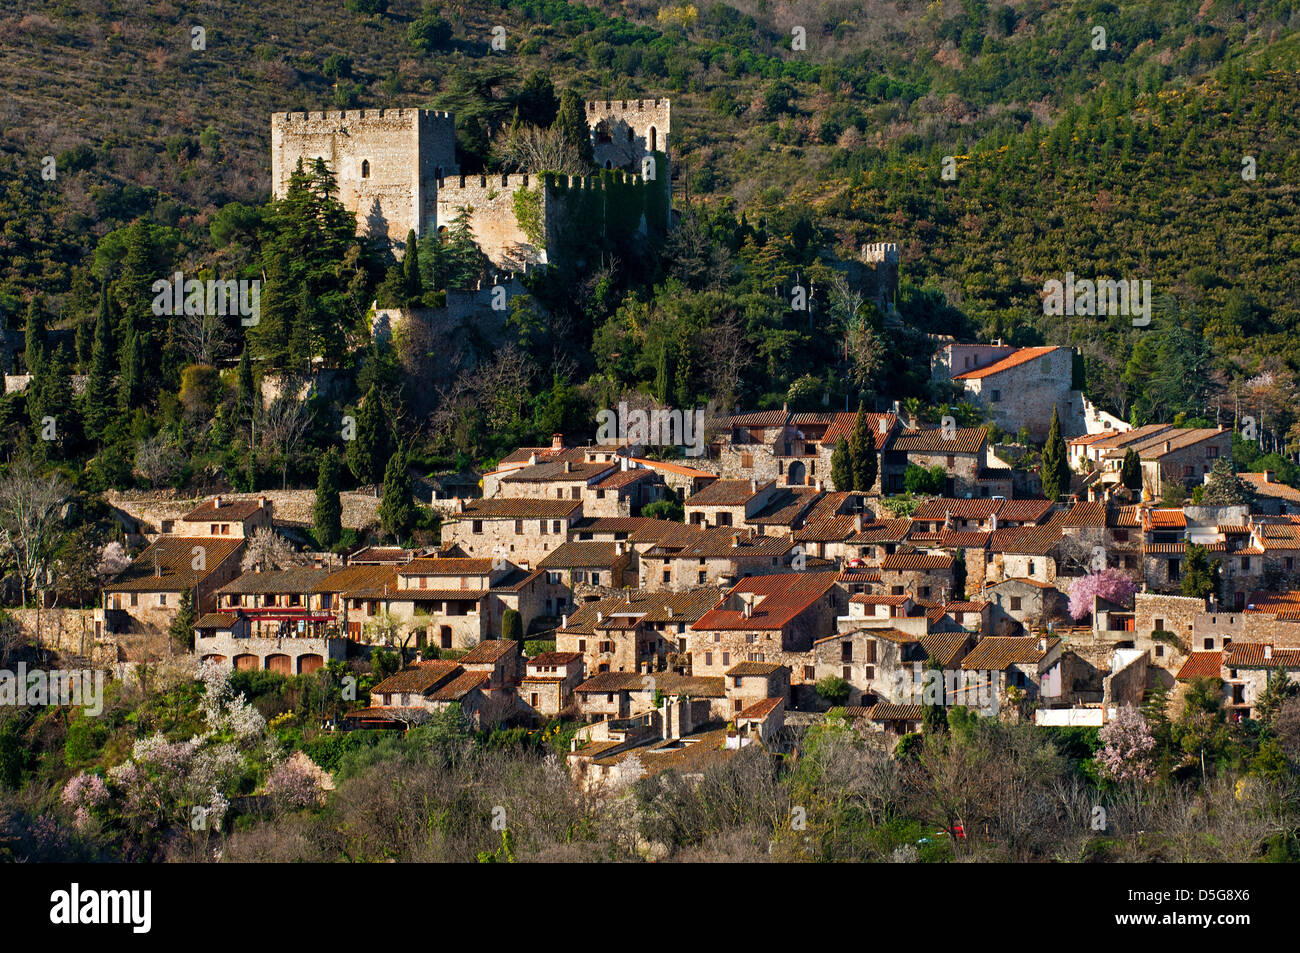 Medieval village Castelnou, Pyrénées-Orientales department, France - Stock Image